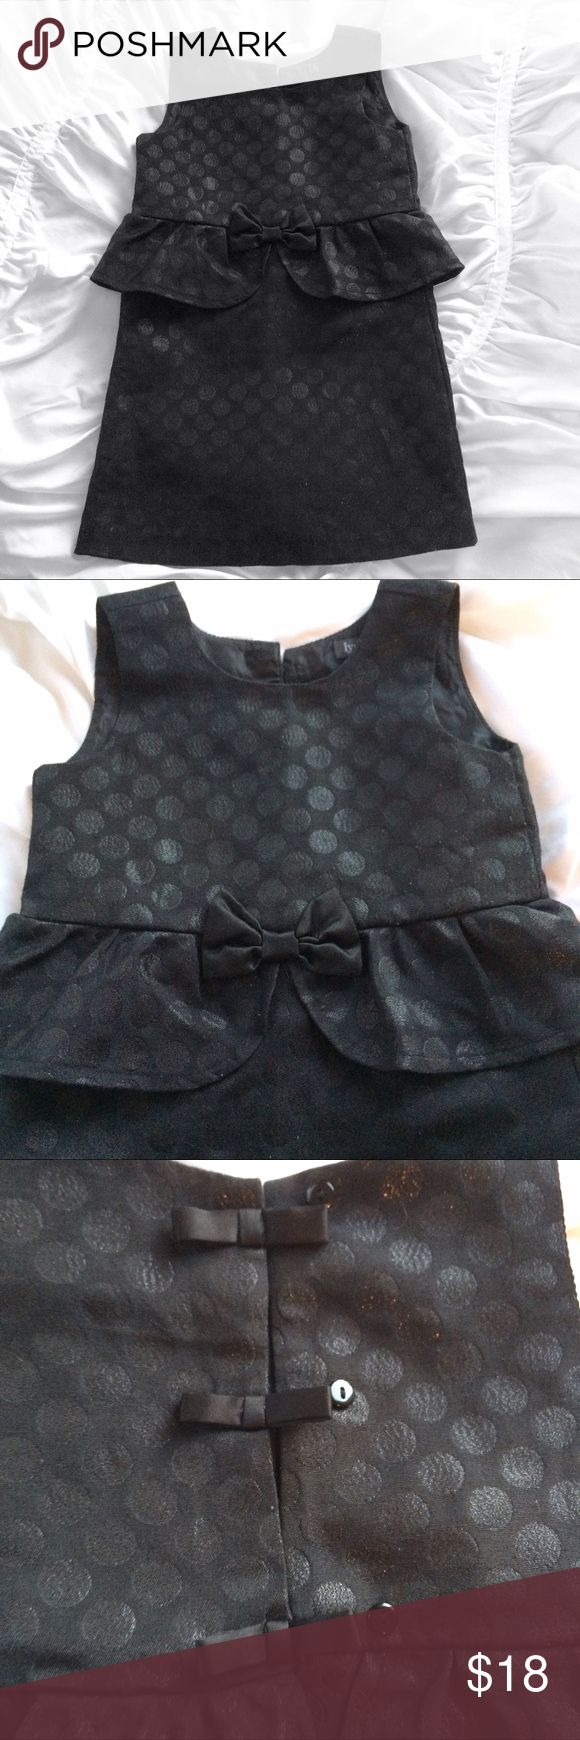 Lydia Jane polka dot party dress with bows 4t Adorable party dress! Lots of bows! Button down back wth bows over top. Bow on front of dress. Black with shimmery polka dots. lydia jane Dresses Formal